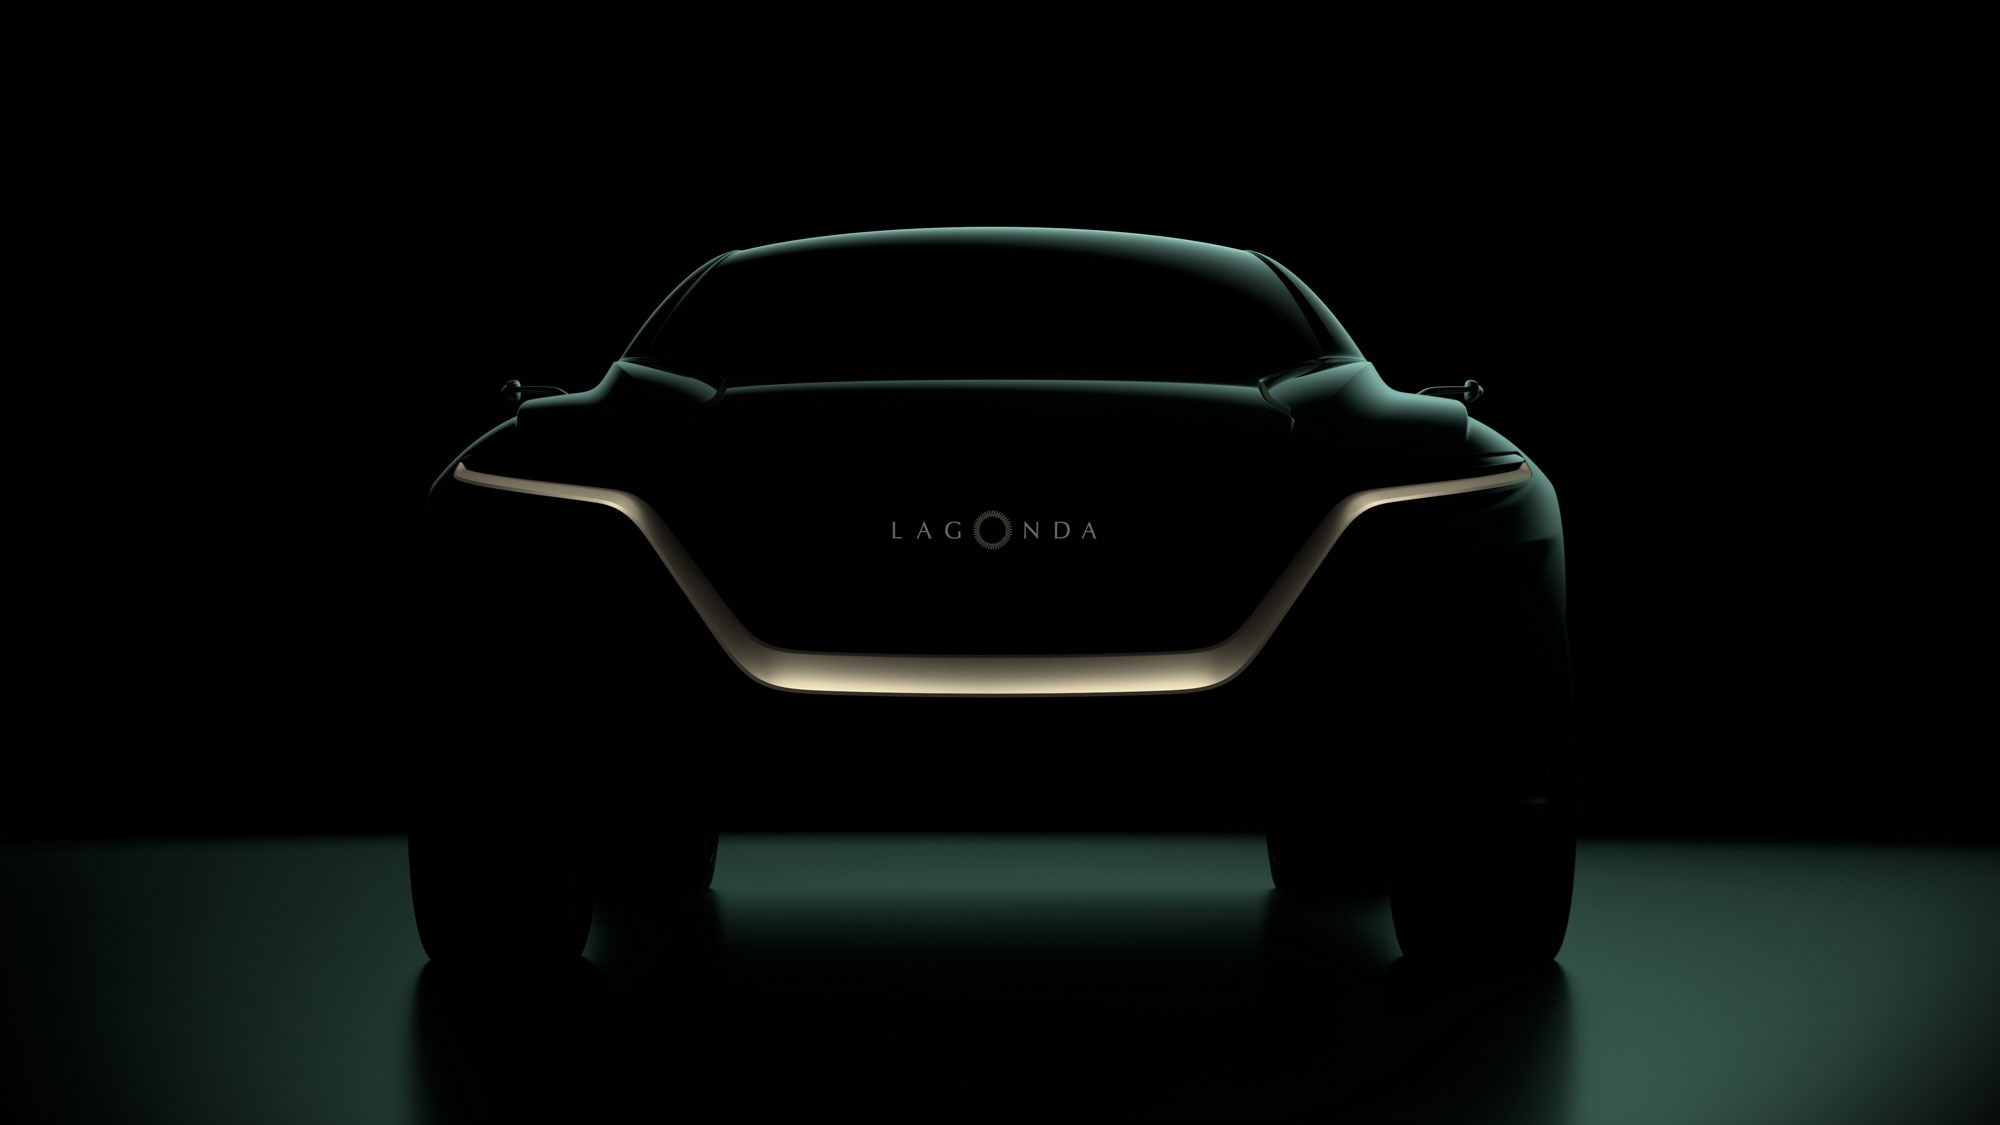 Aston Martin to Debut Lagonda All-Terrain Concept in Geneva